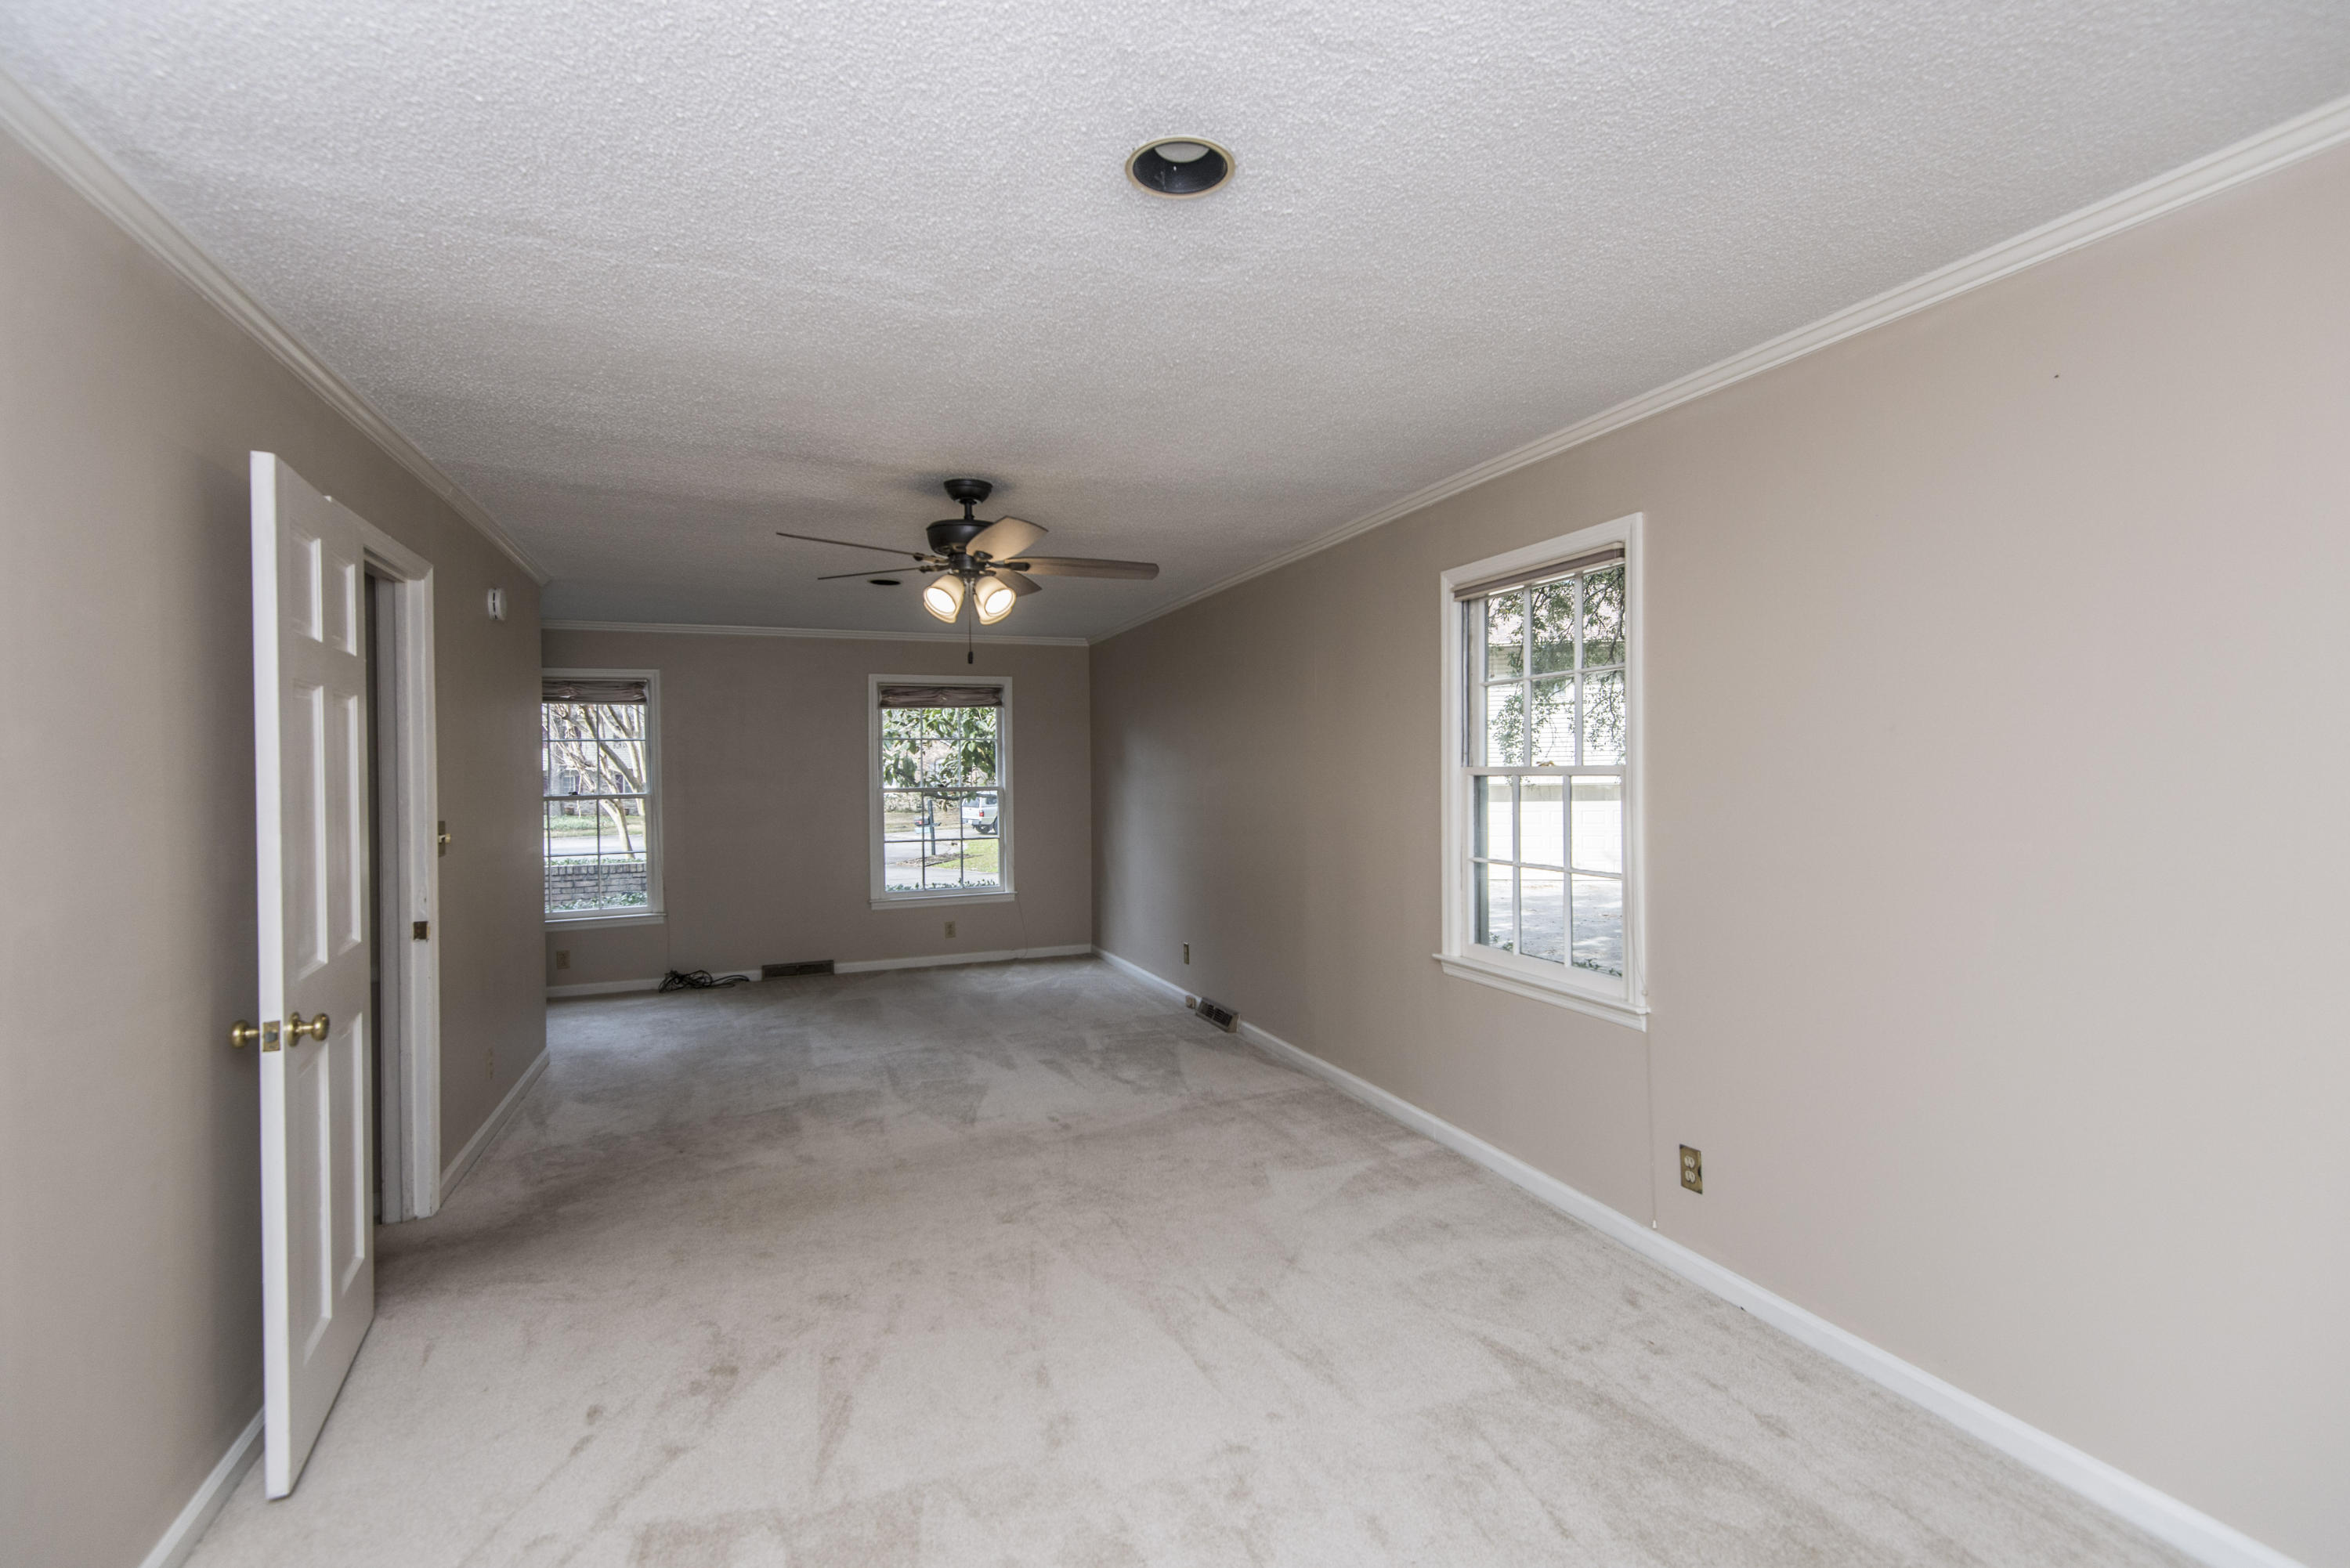 Kings Grant Homes For Sale - 102 Candlewood, Summerville, SC - 35